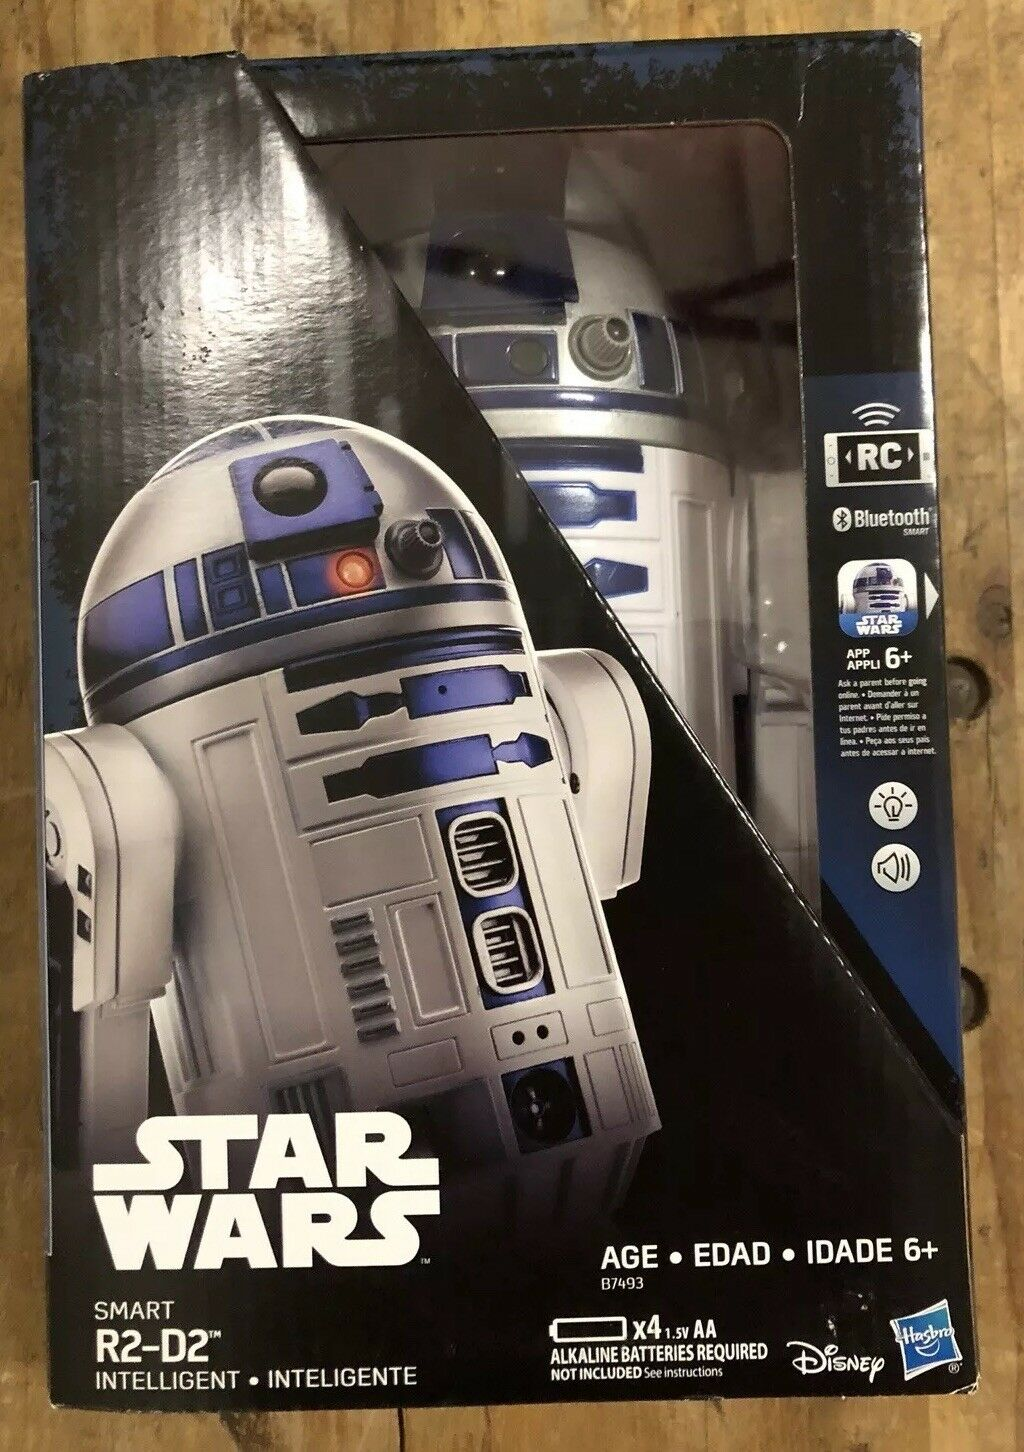 BRAND NEW Star Wars Smart App Enabled R2-D2 R2D2 Remote Control Robot RC Genuine